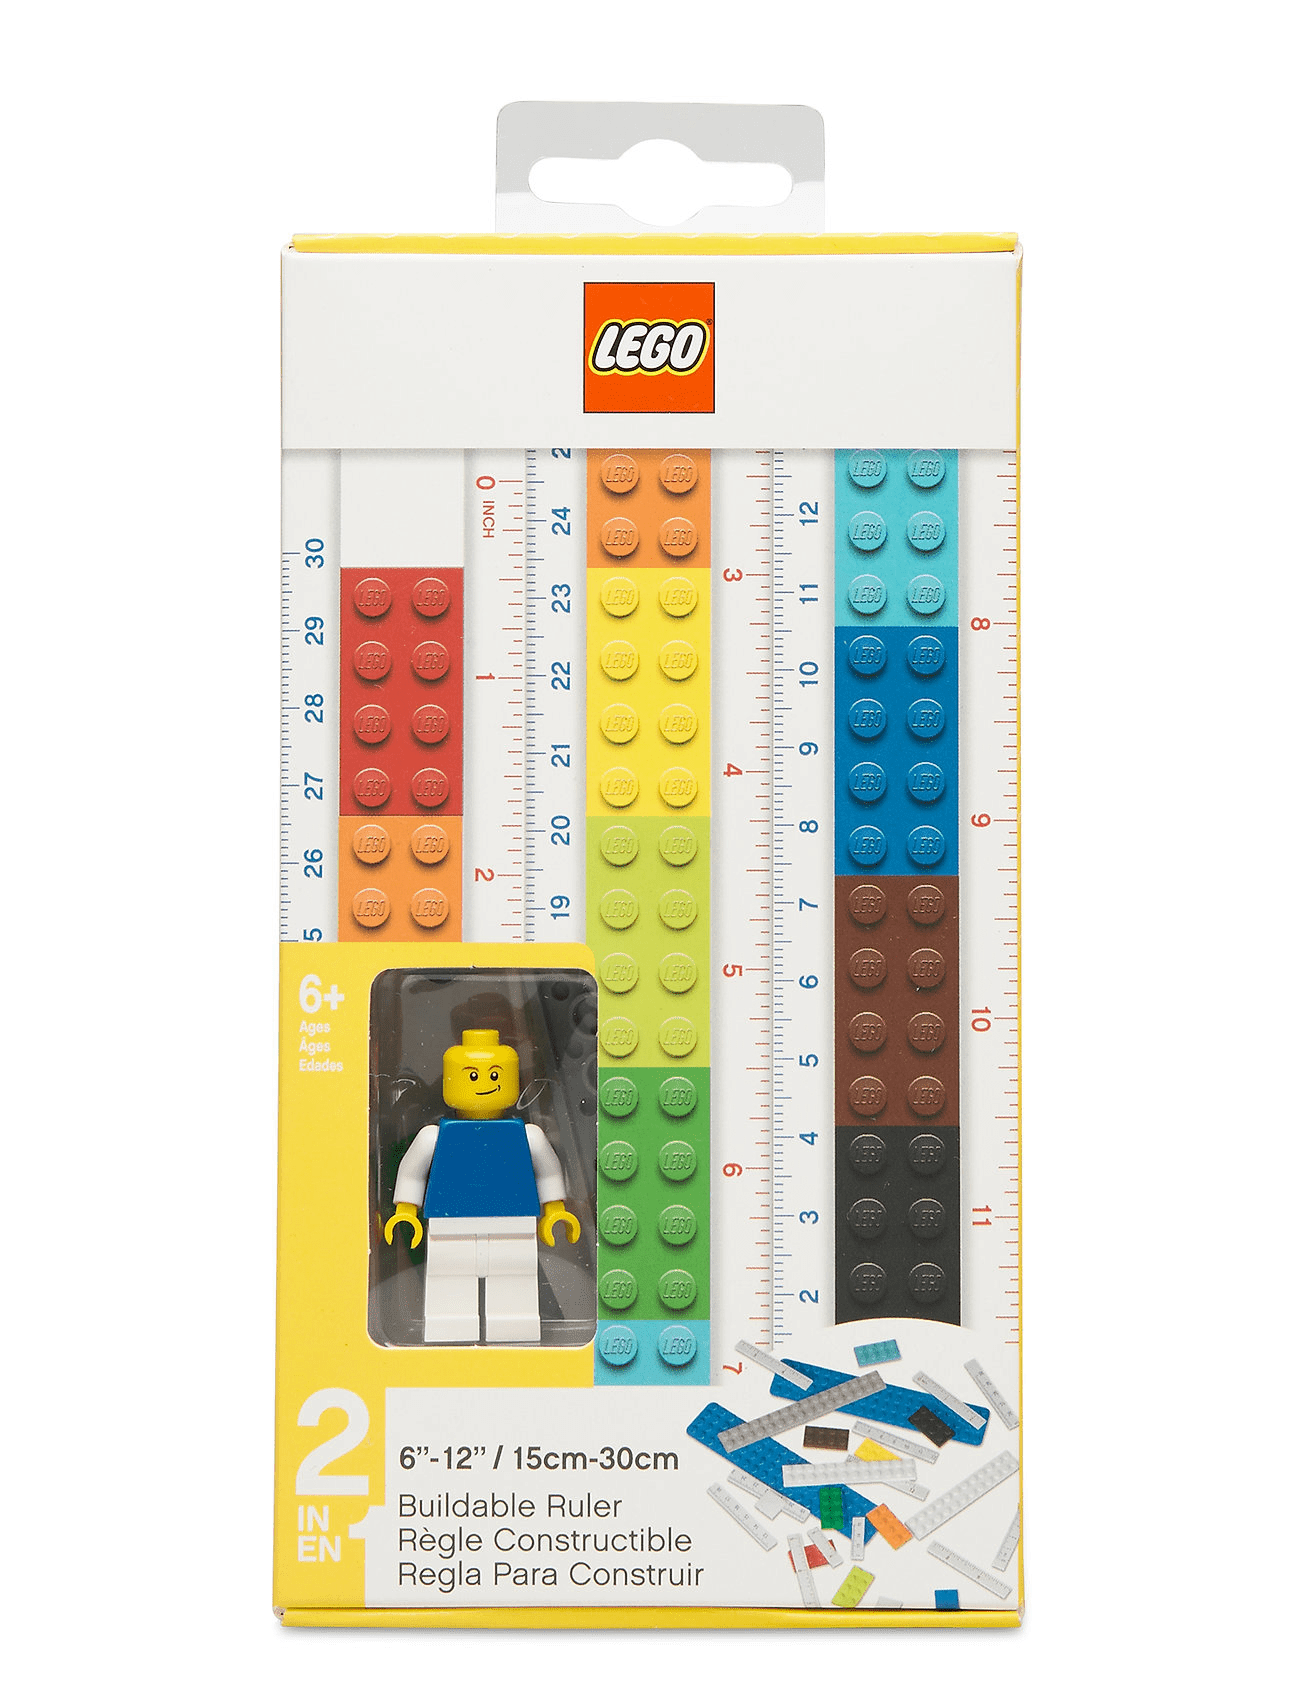 LEGO® 2-in-1 Buildable Ruler With Minifigure